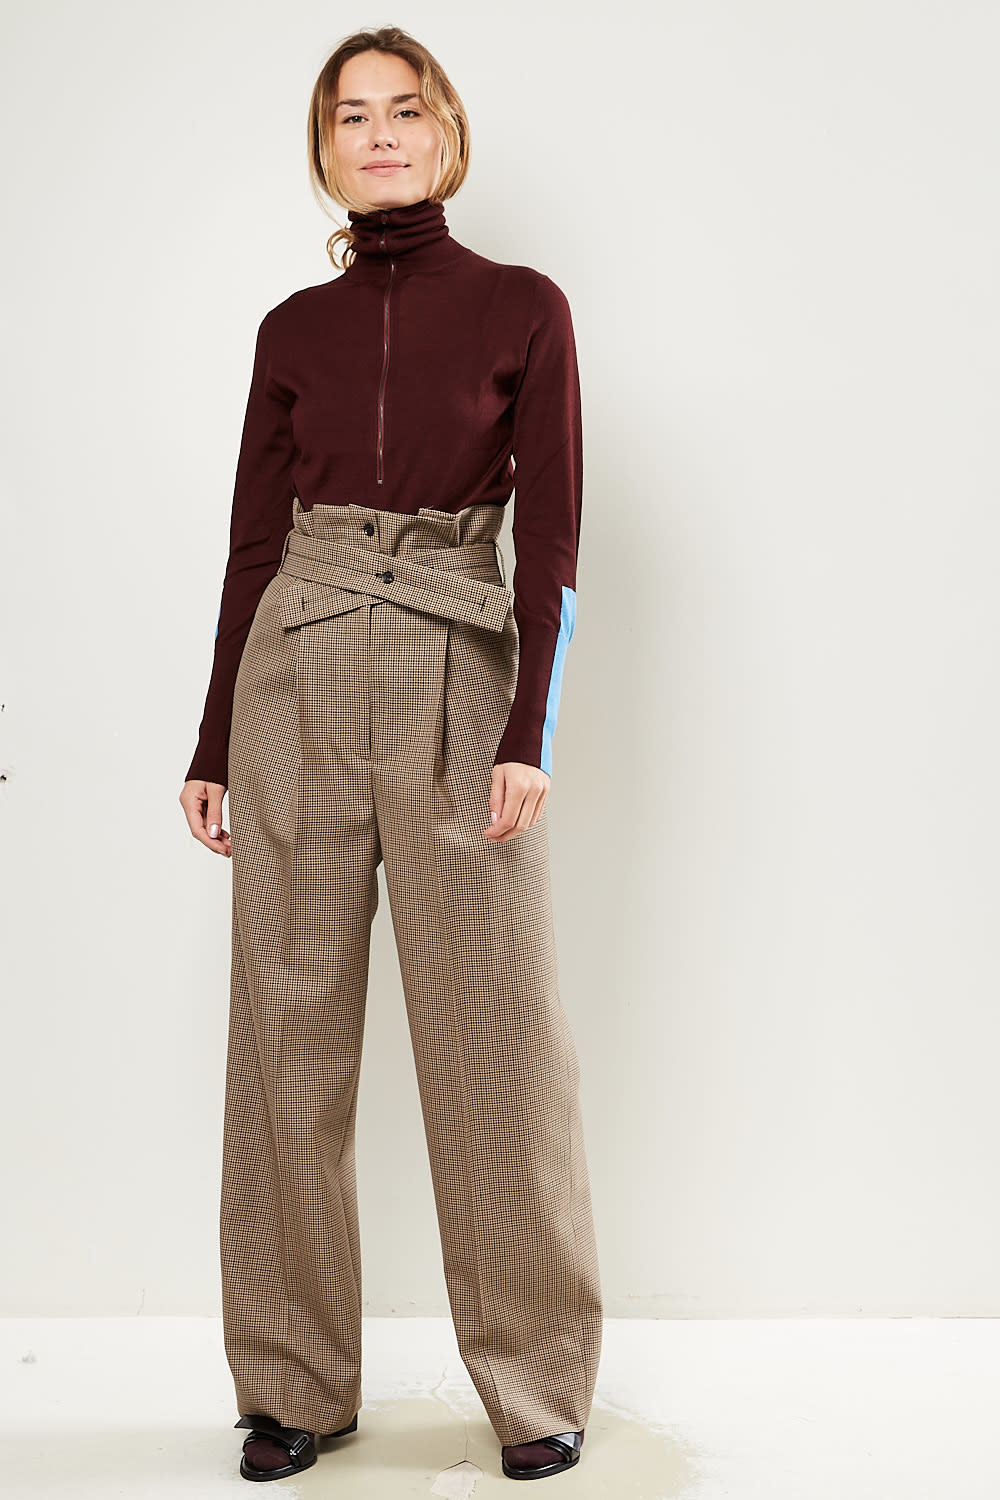 Paul Smith - Womens trousers